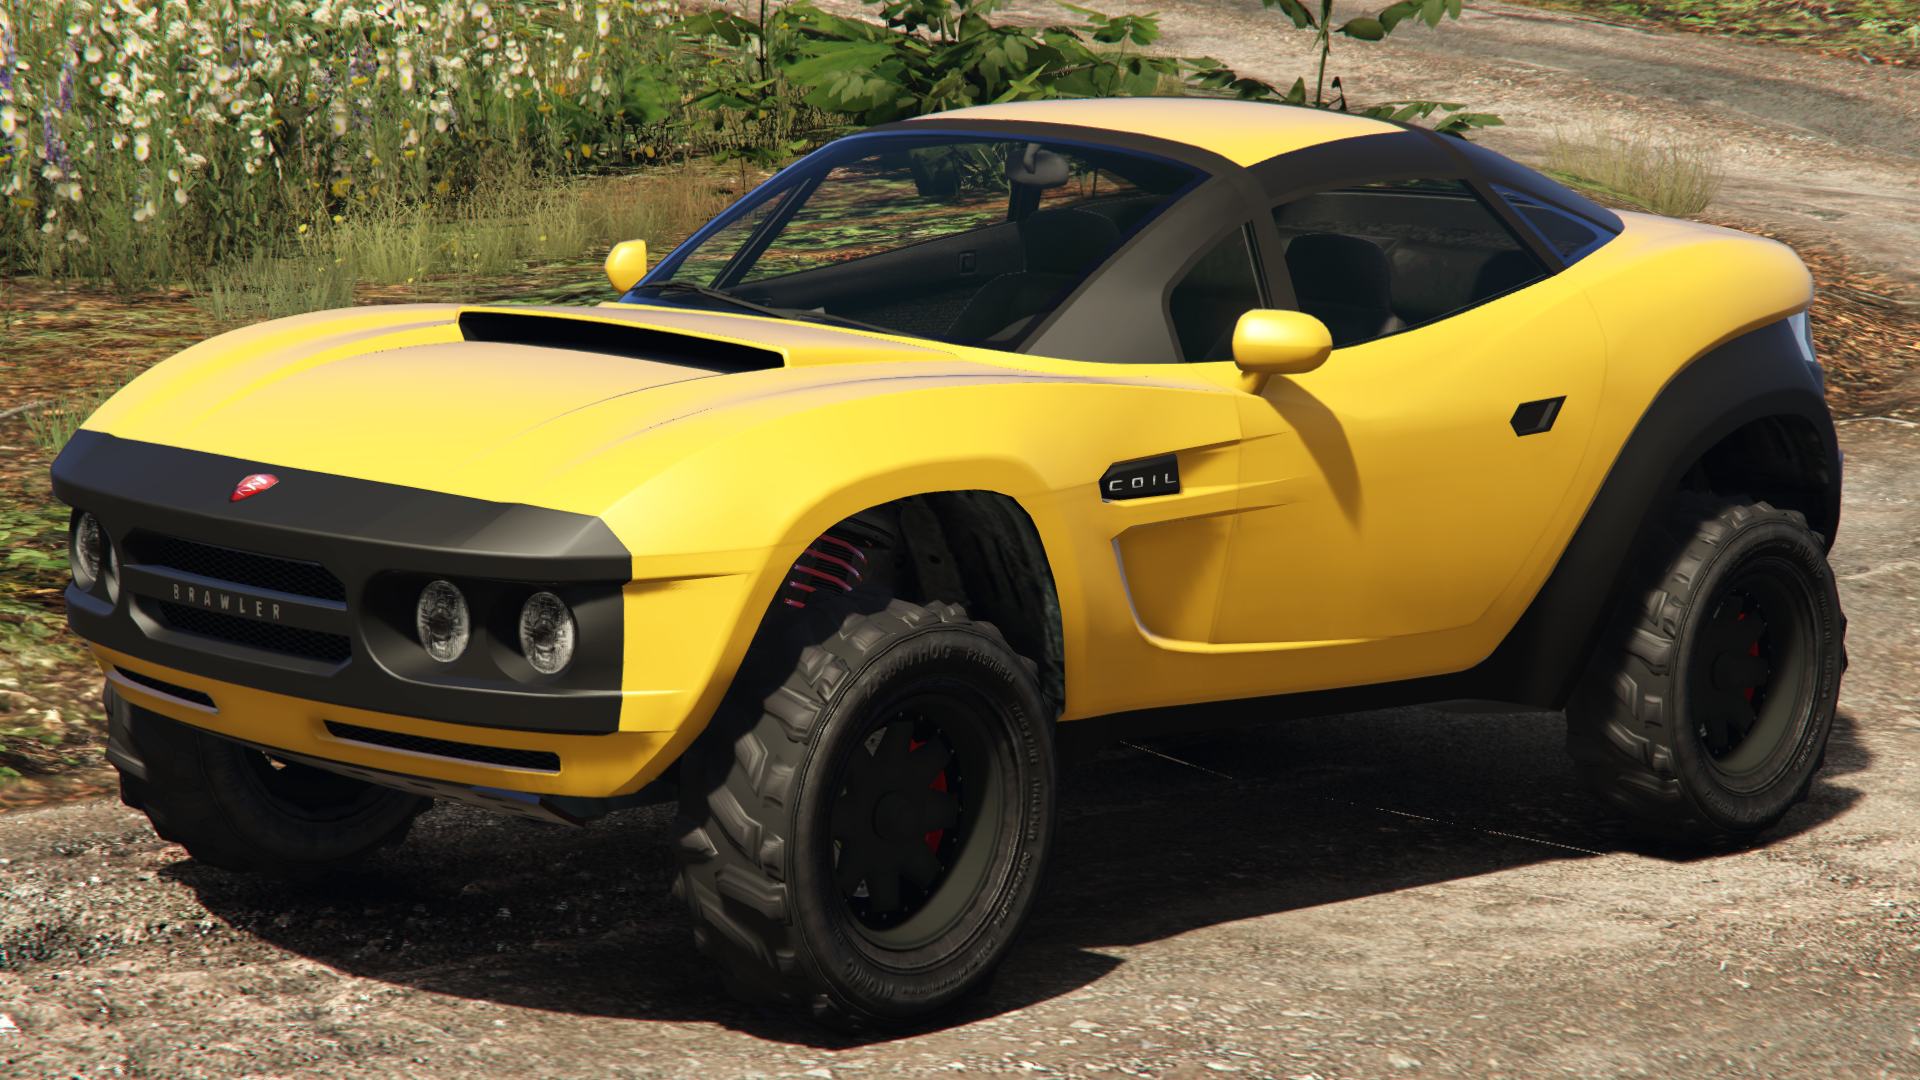 39401 Gta V Grotti Turismo R V20 Epm besides Watch additionally Toyota Gt86 Super Tuning Add On also 895254 Coil Cyclone Discussion Thread in addition Coches Gta V 208134. on gta v coil